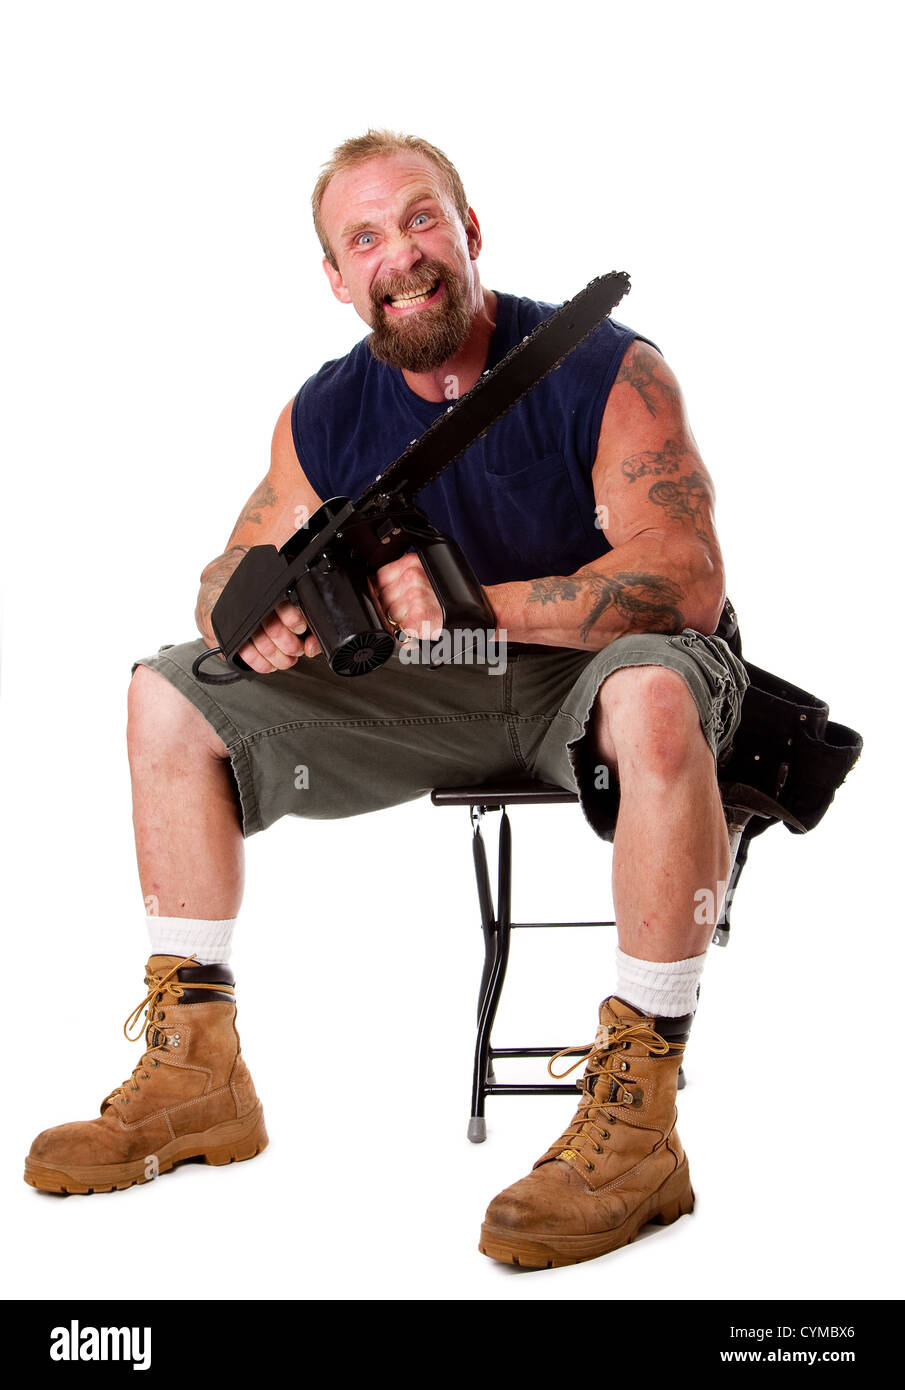 Crazy Caucasian man with tattoos and chainsaw sitting on stool with strong facial expression, isolated. Stock Photo